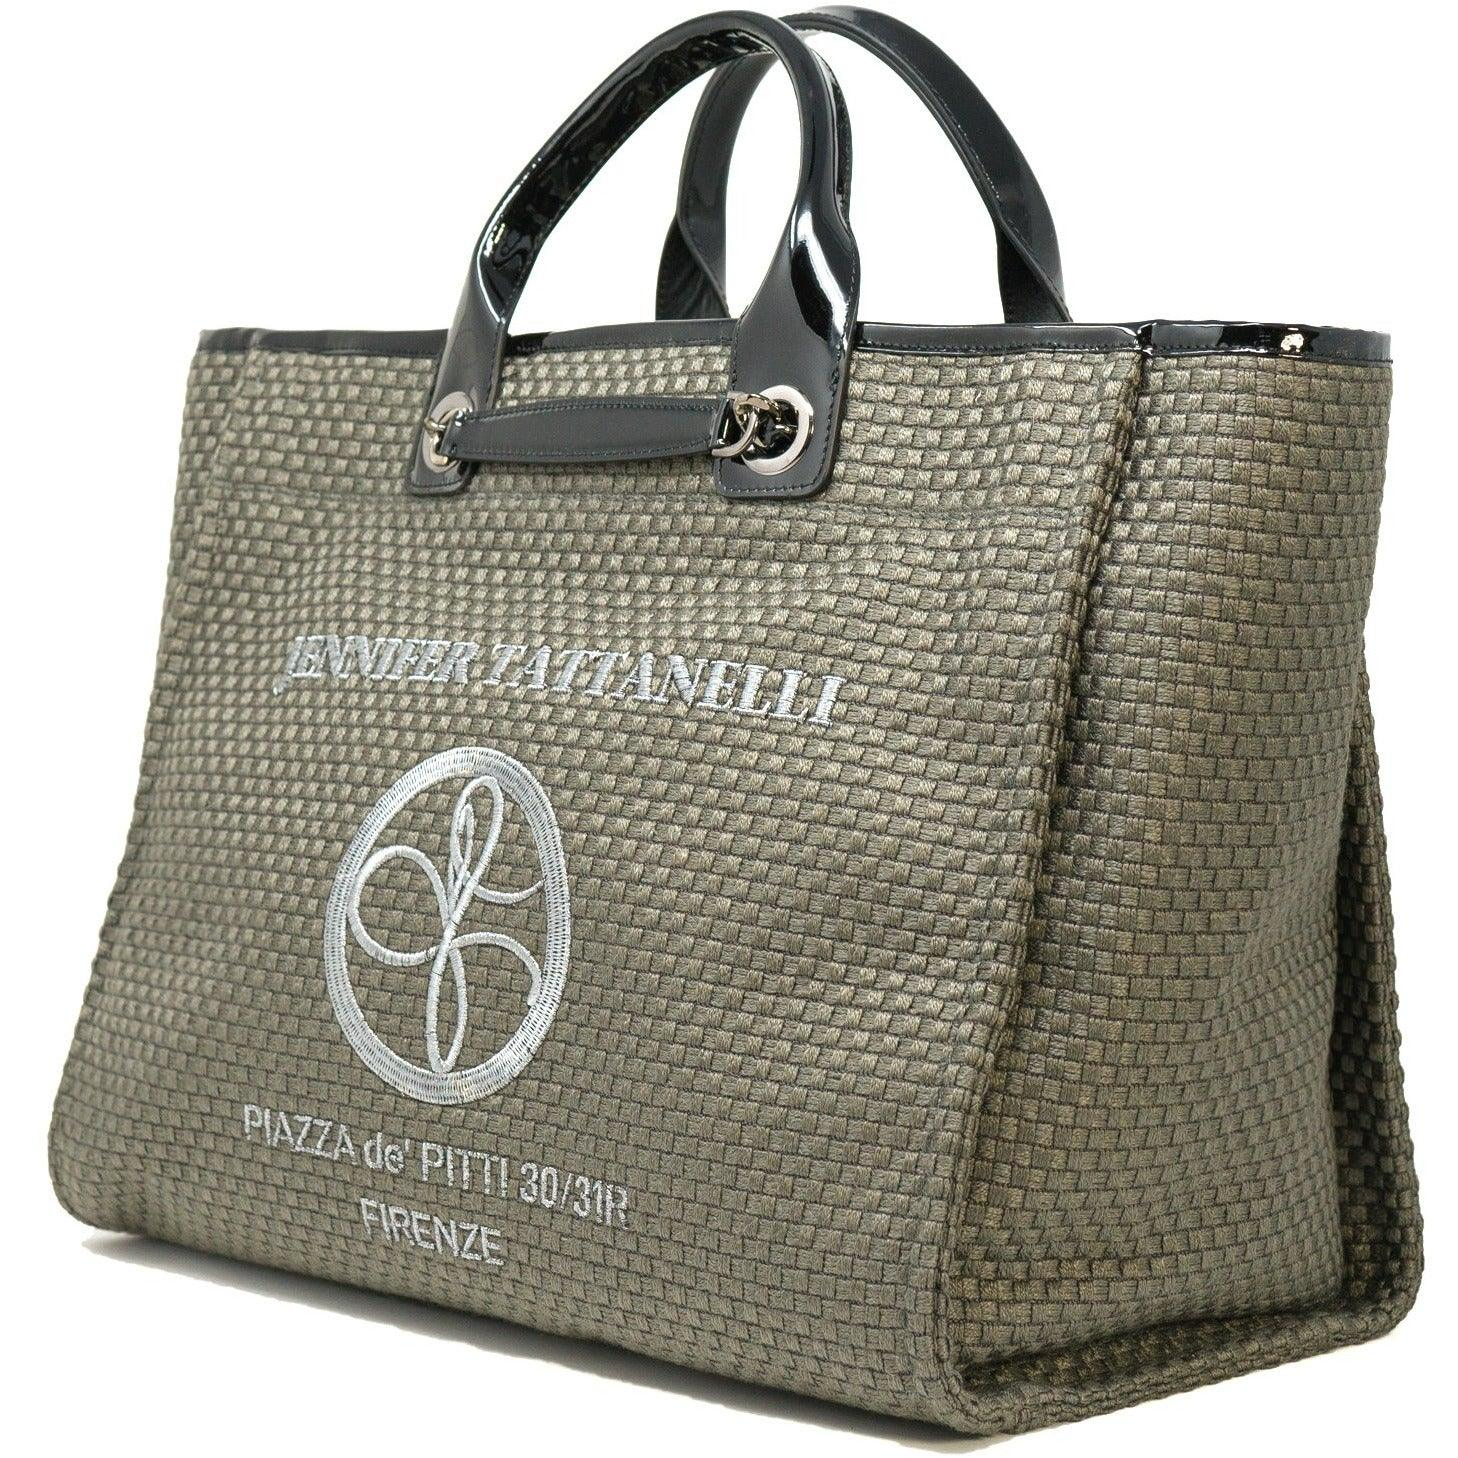 The Hamptons Bag in Grey and Black Patent Leather